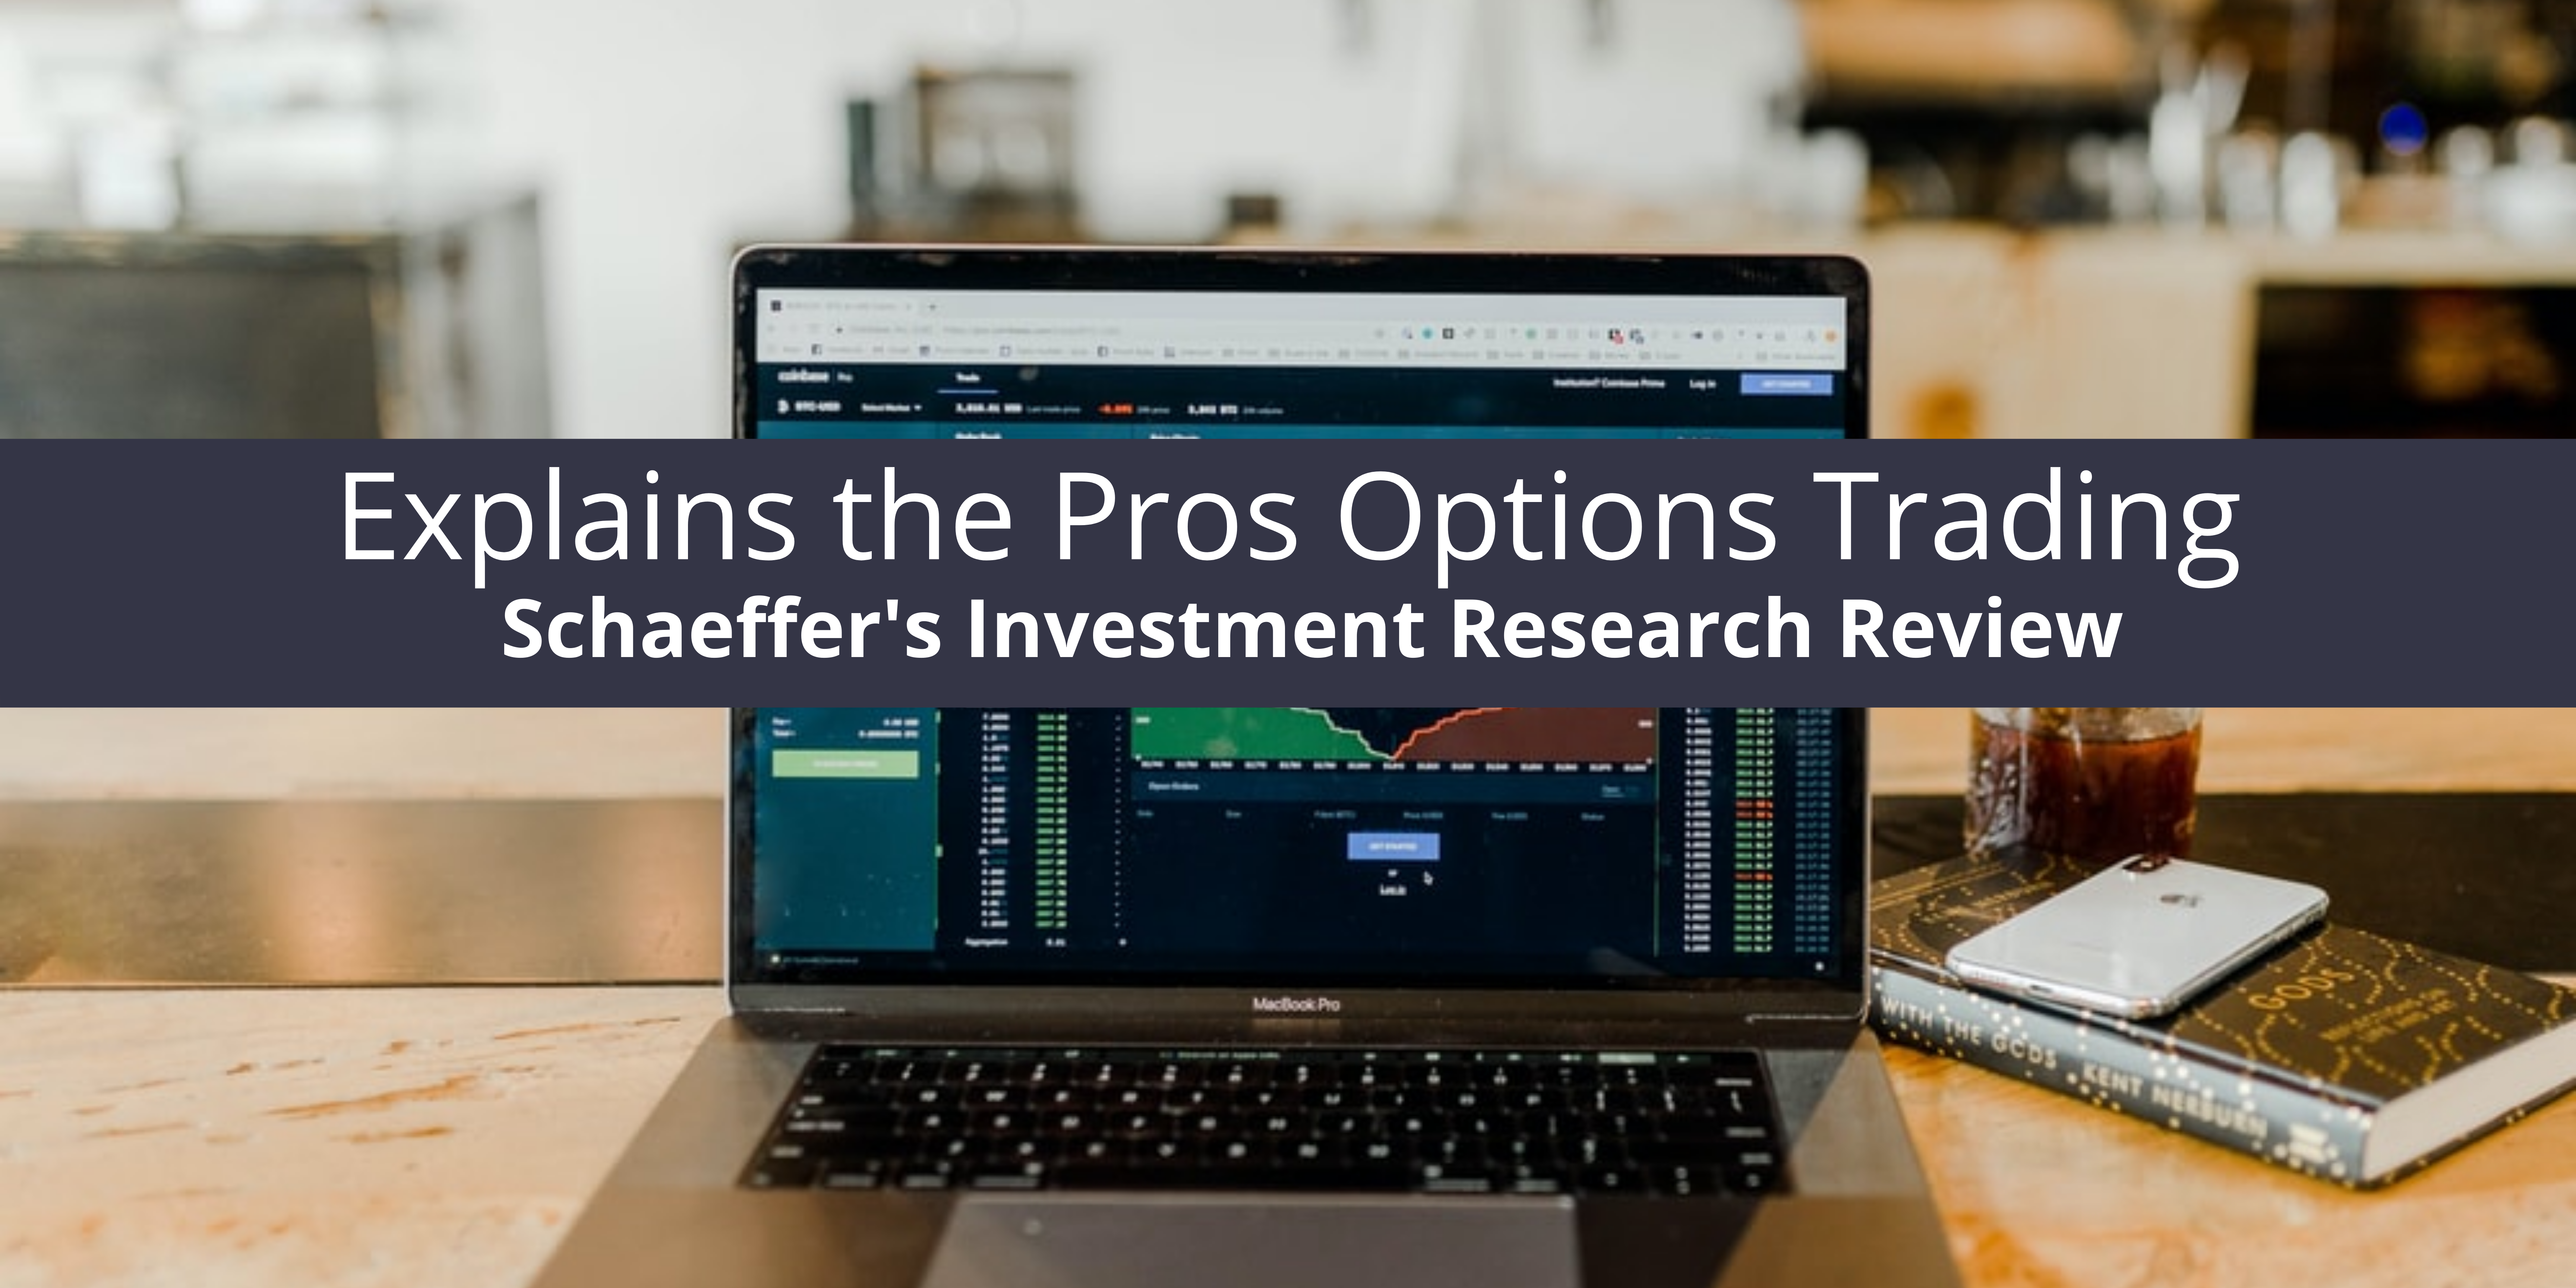 Schaeffer's Investment Research Review Explains Pros Options Trading